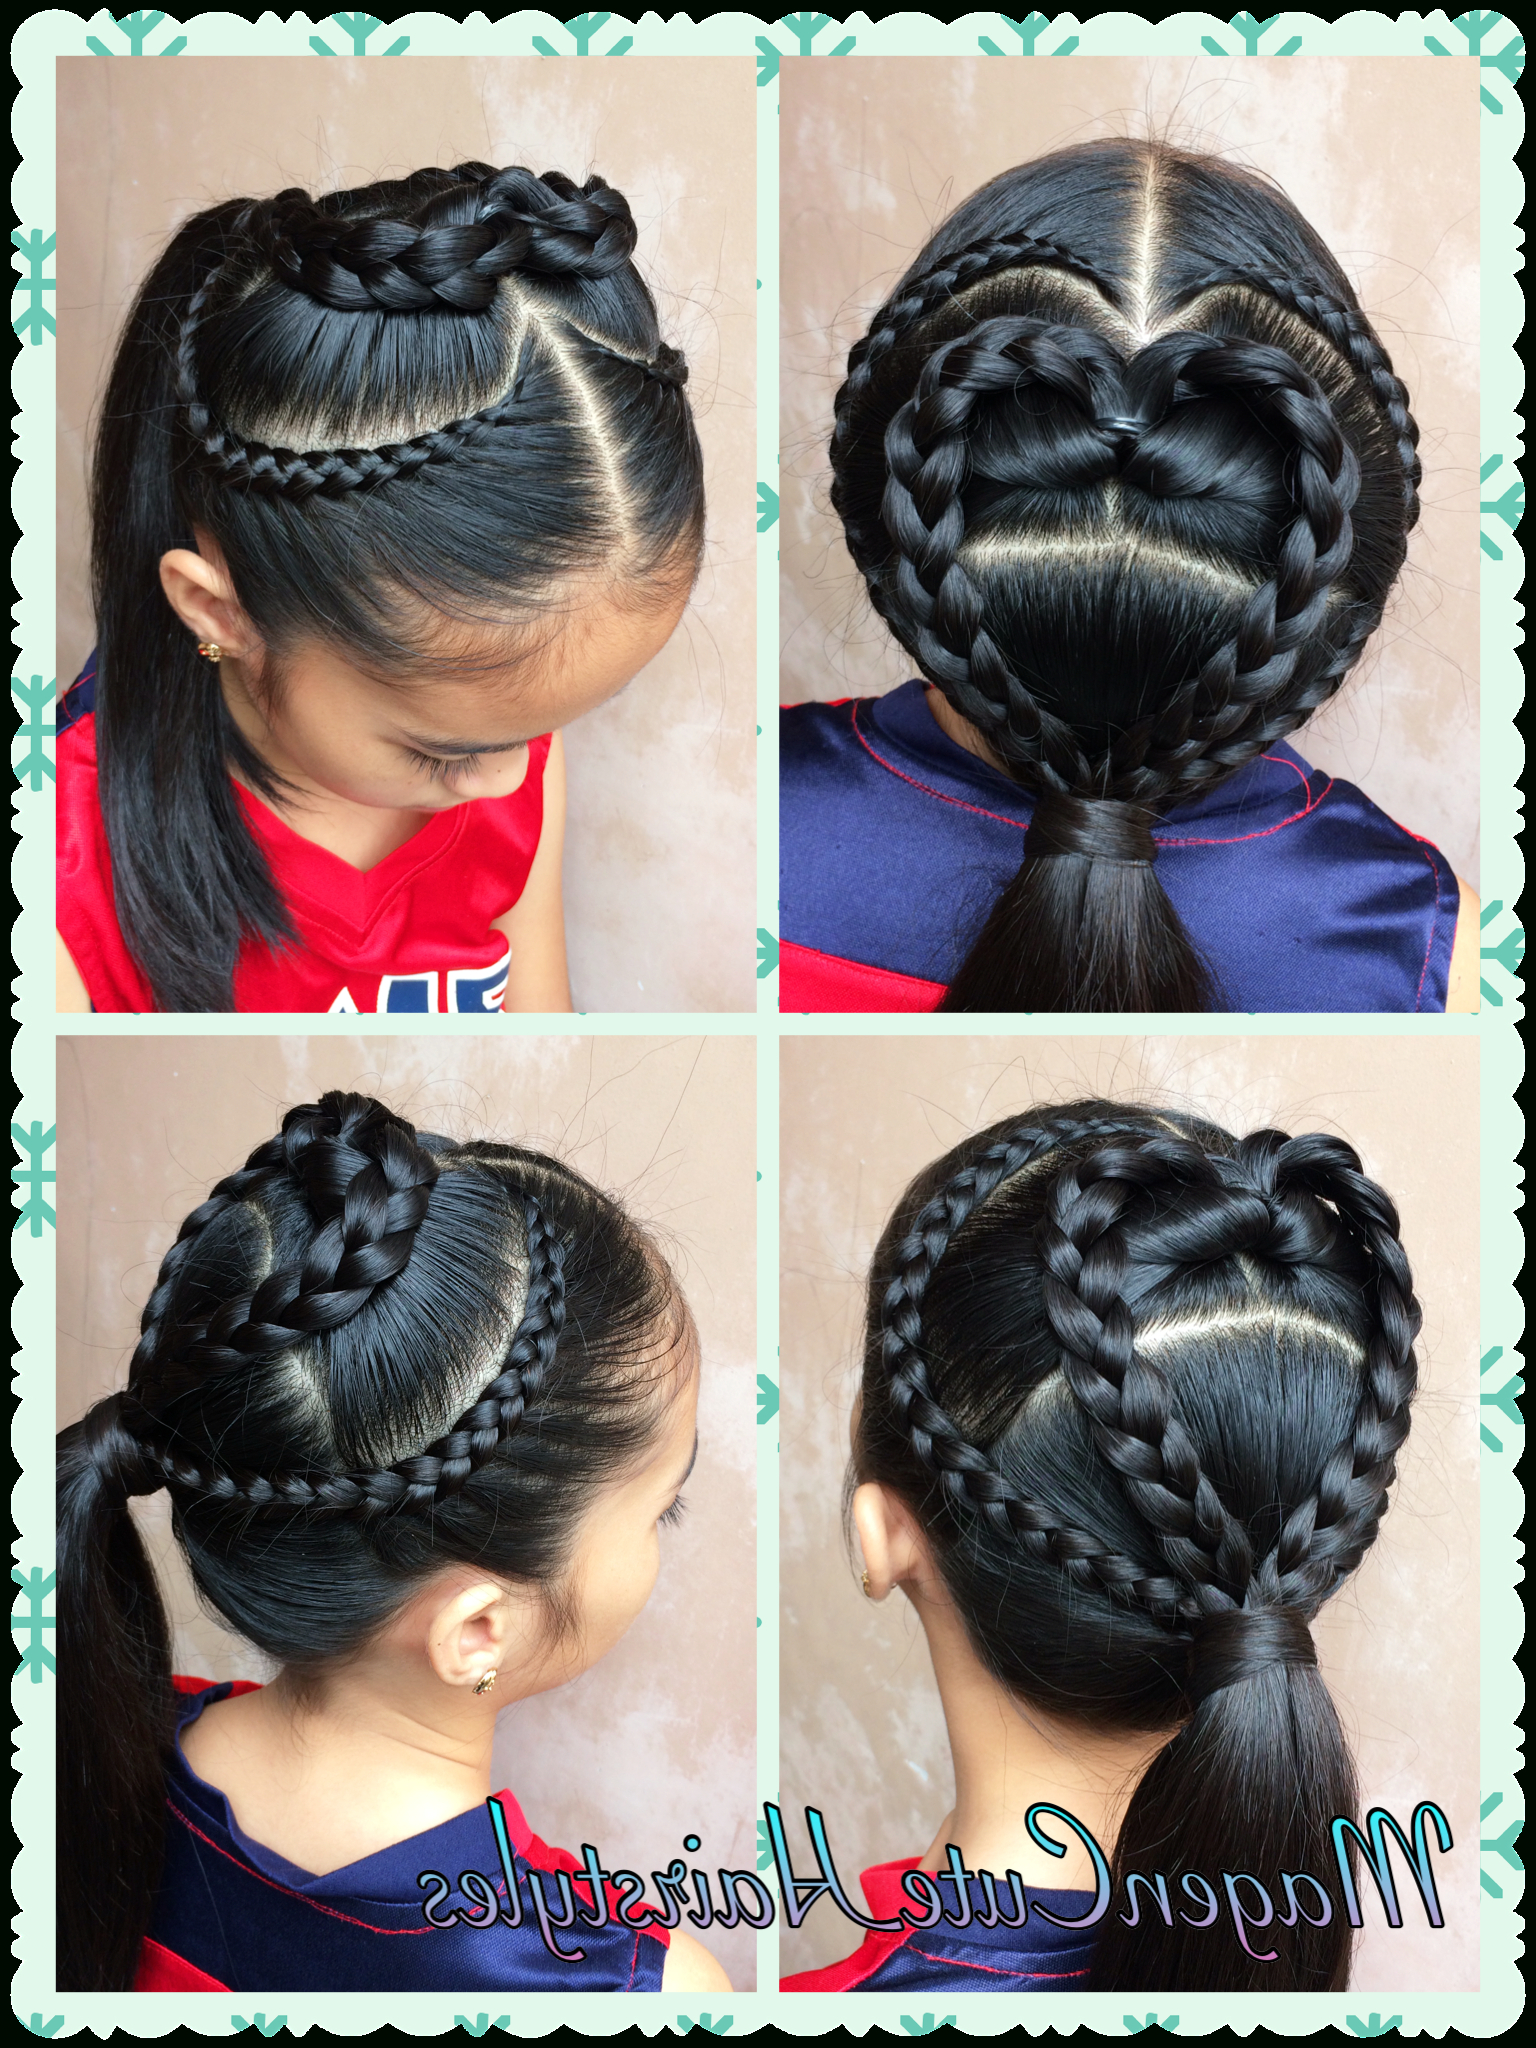 Current Heart Shaped Fishtail Under Braid Hairstyles For Heart Shape Lace Braid/pull Through Style (View 5 of 20)